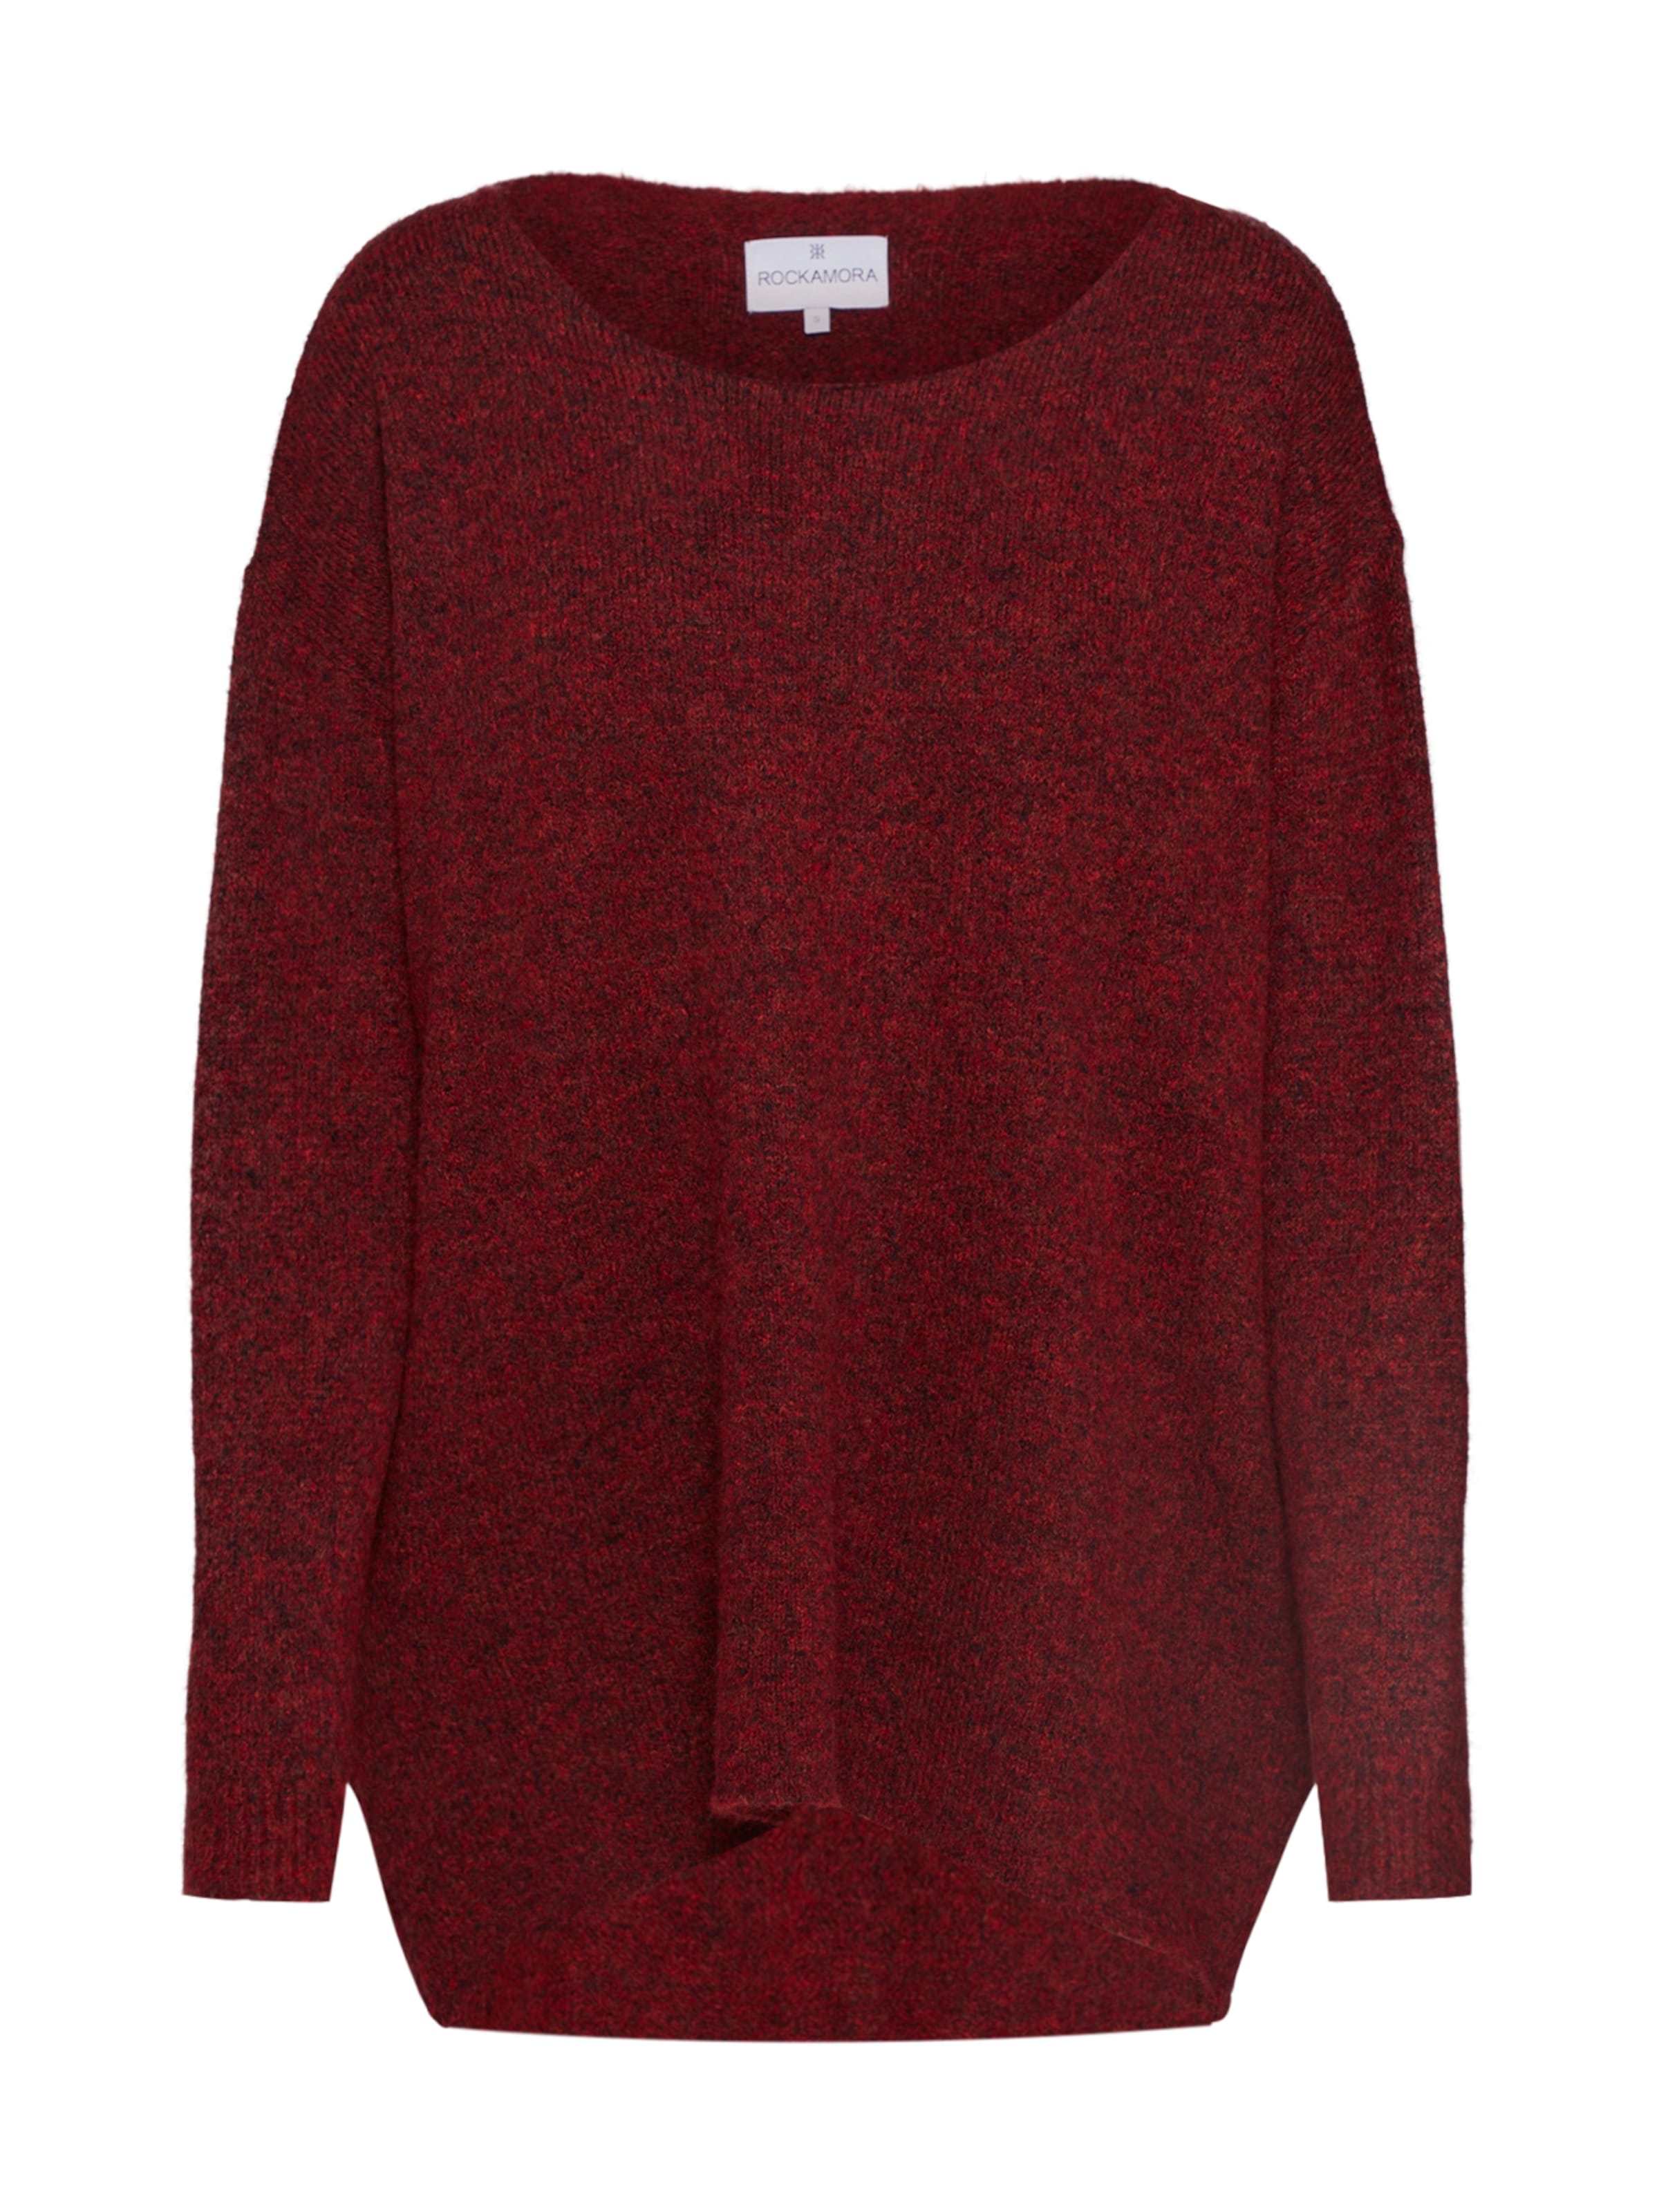 Oversized Rot Rockamora In Pullover 'mille' rWCodBEQxe